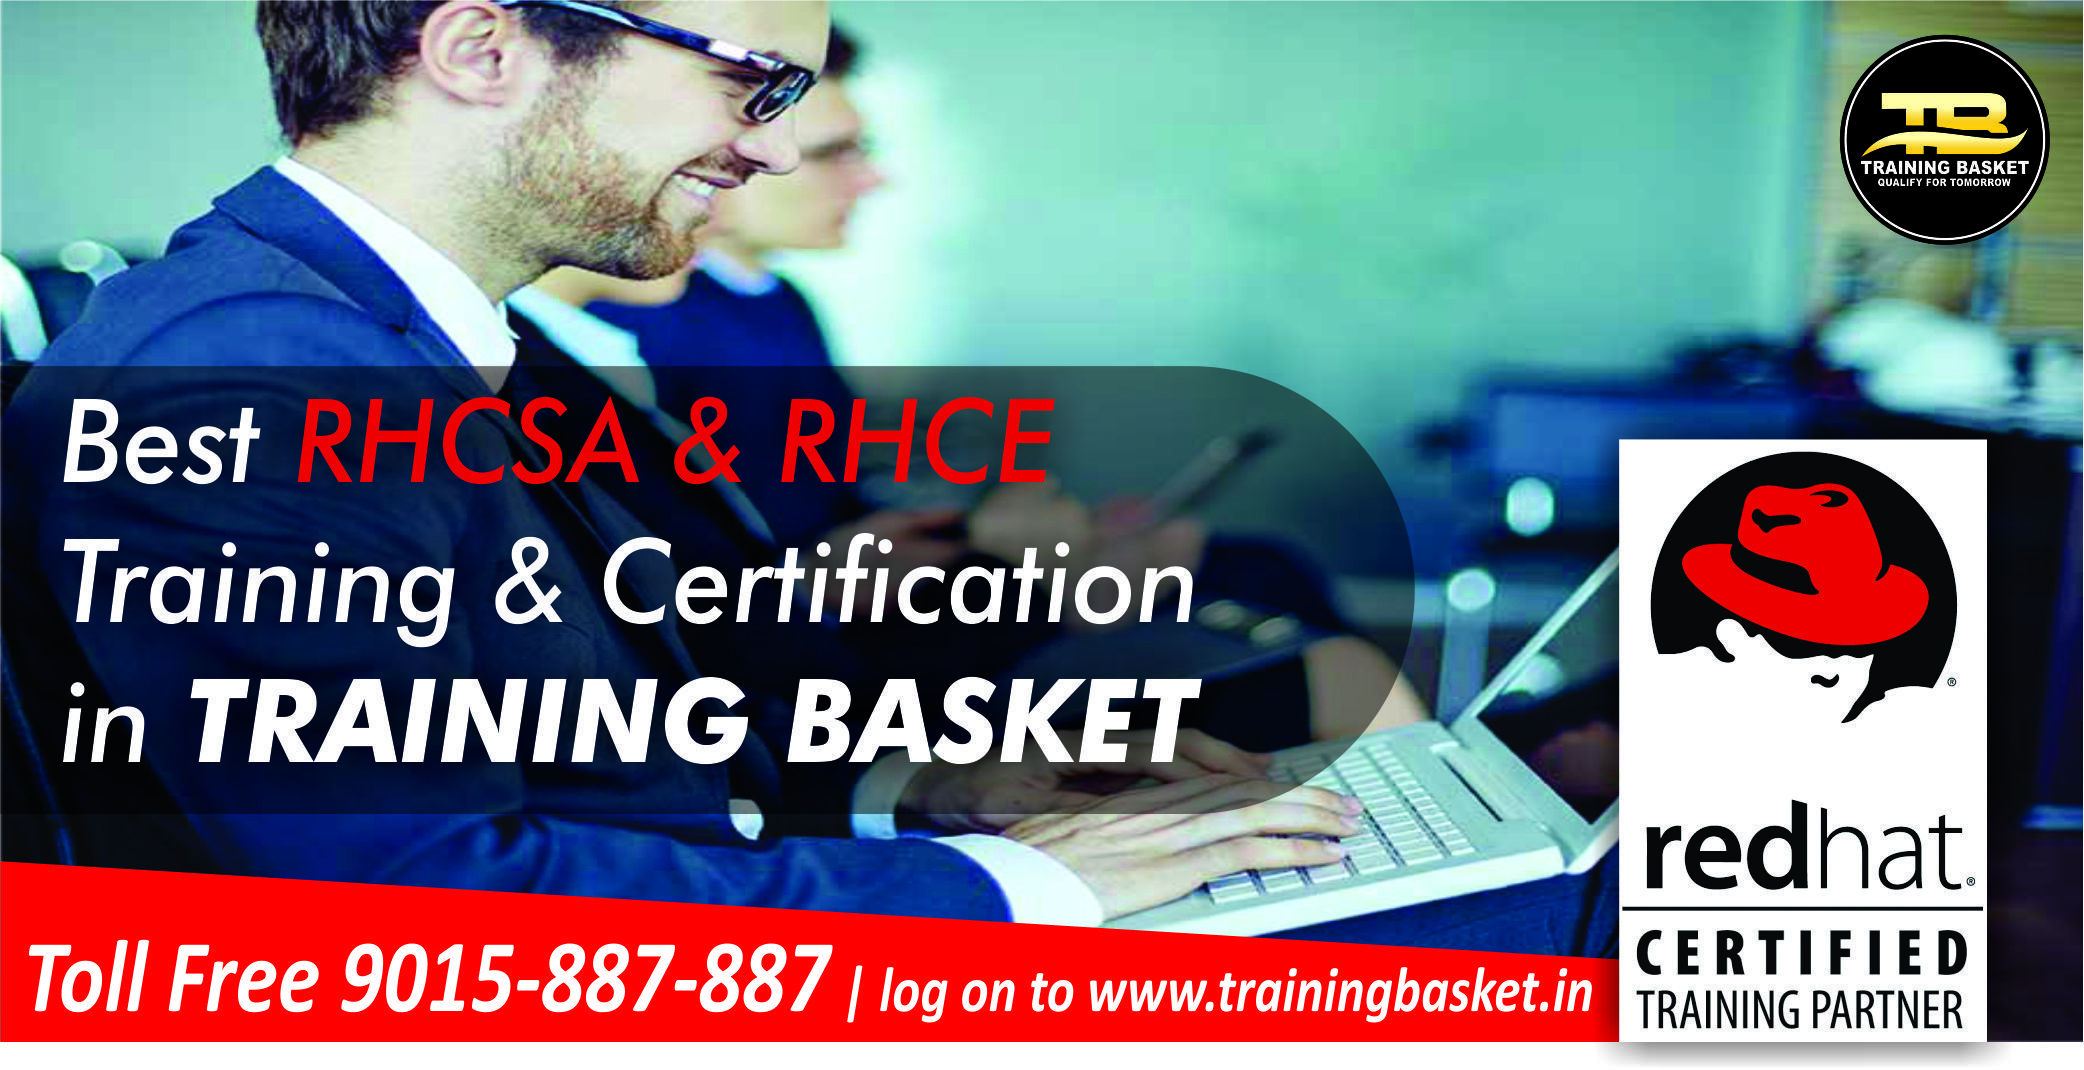 Pin by John Wick on 4/6 weeks summer Training on ccna-CISCO